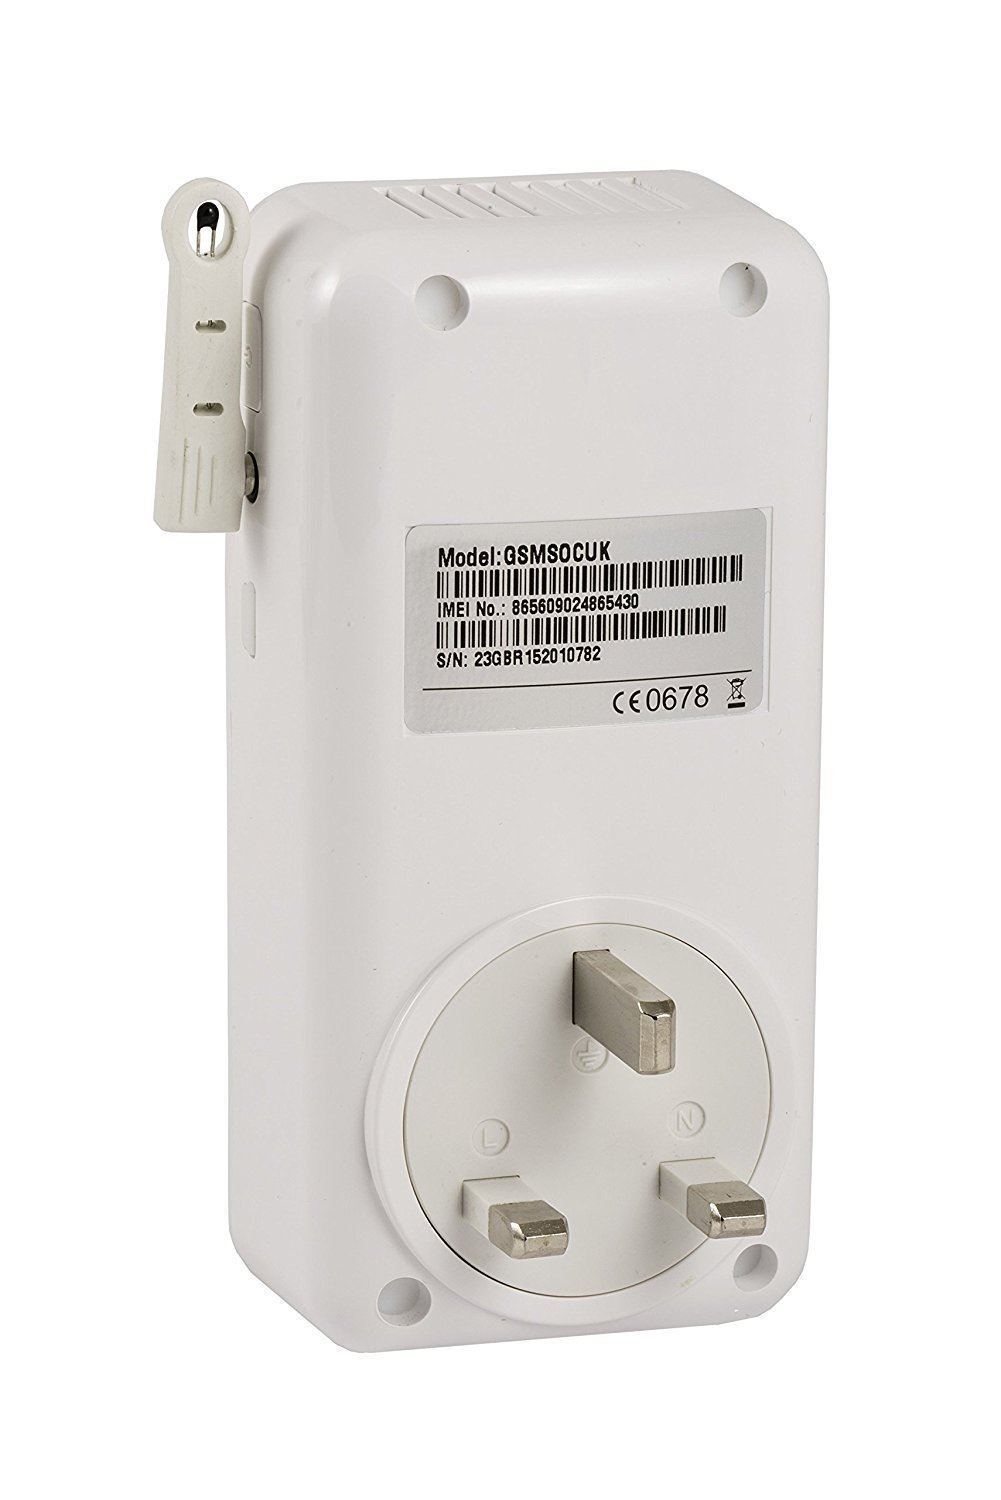 GSM Mains Power Control, Model PowerTXT